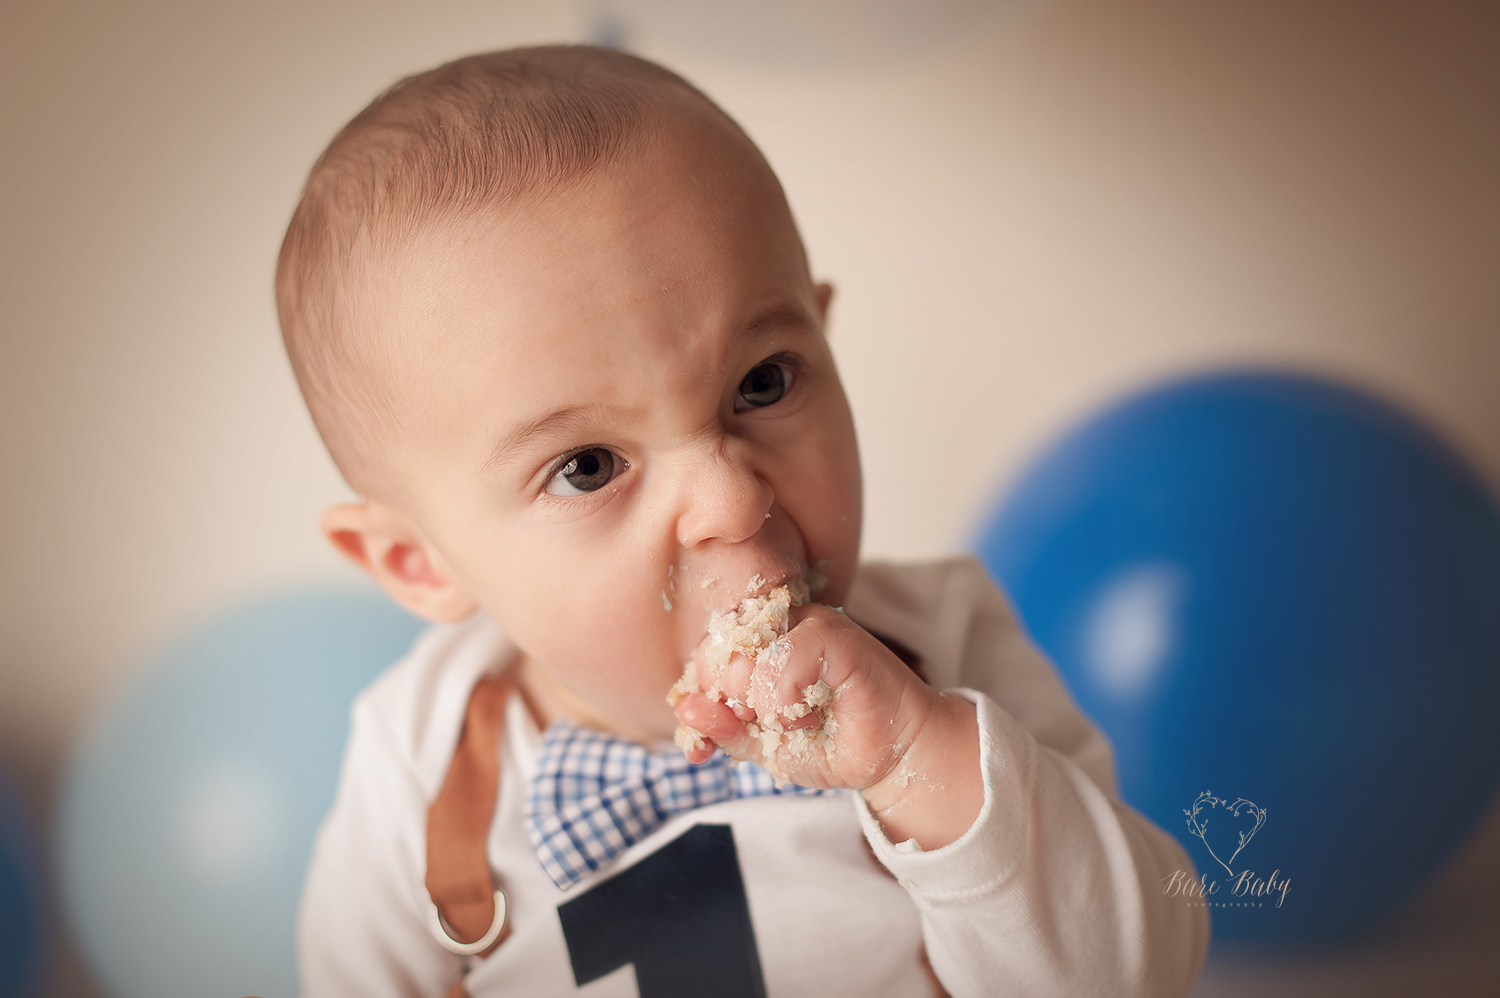 cake-smash-baby-photographer.jpg